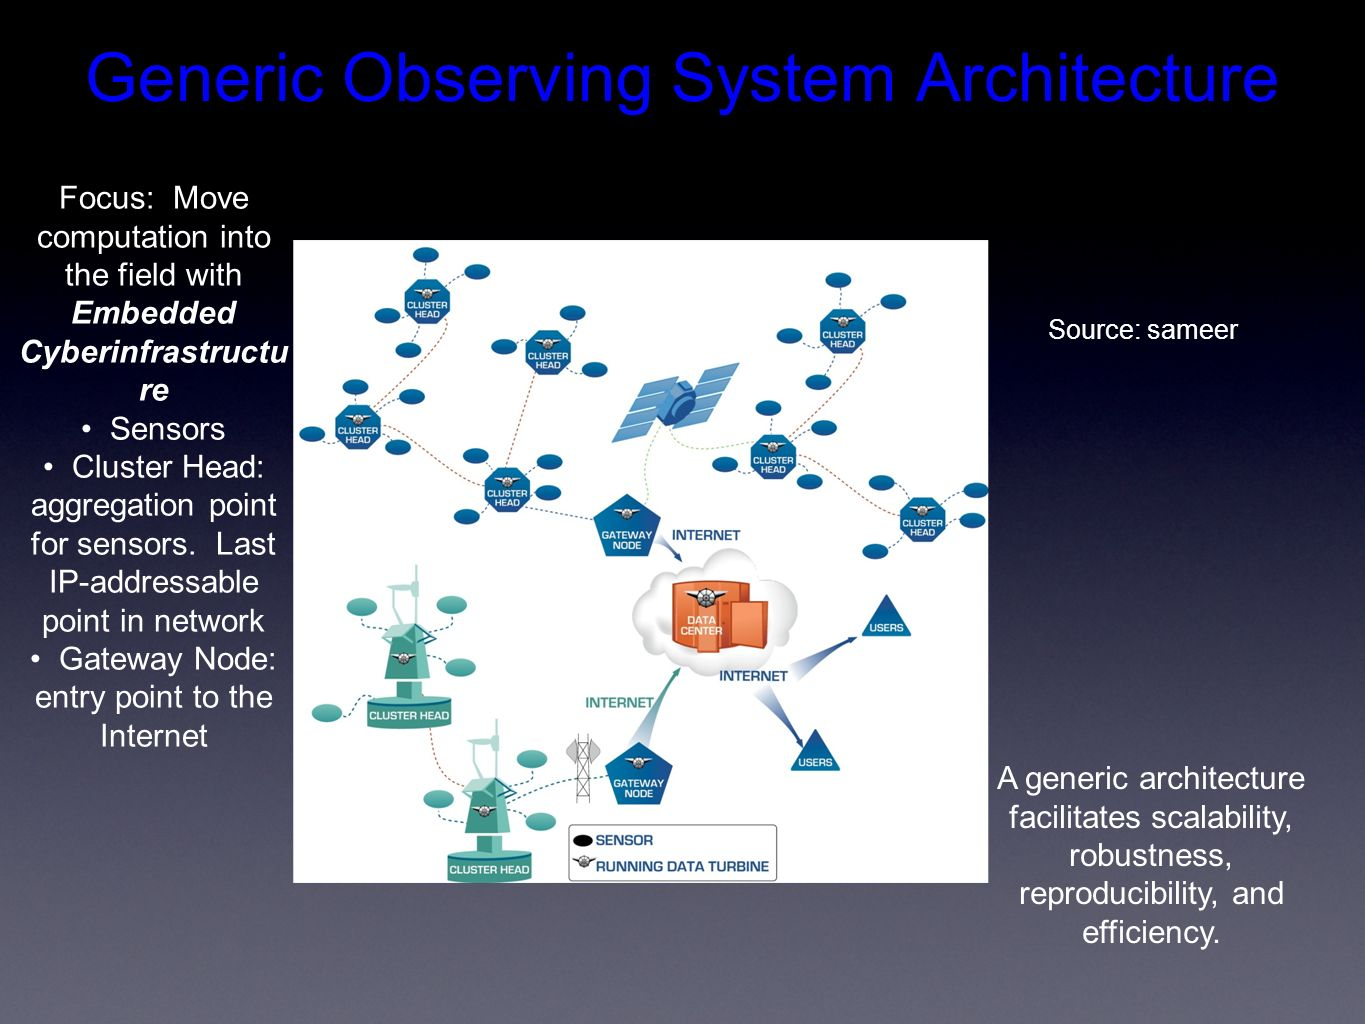 Generic Observing System Architecture Focus: Move computation into the field with Embedded Cyberinfrastructu re Sensors Cluster Head: aggregation point for sensors.